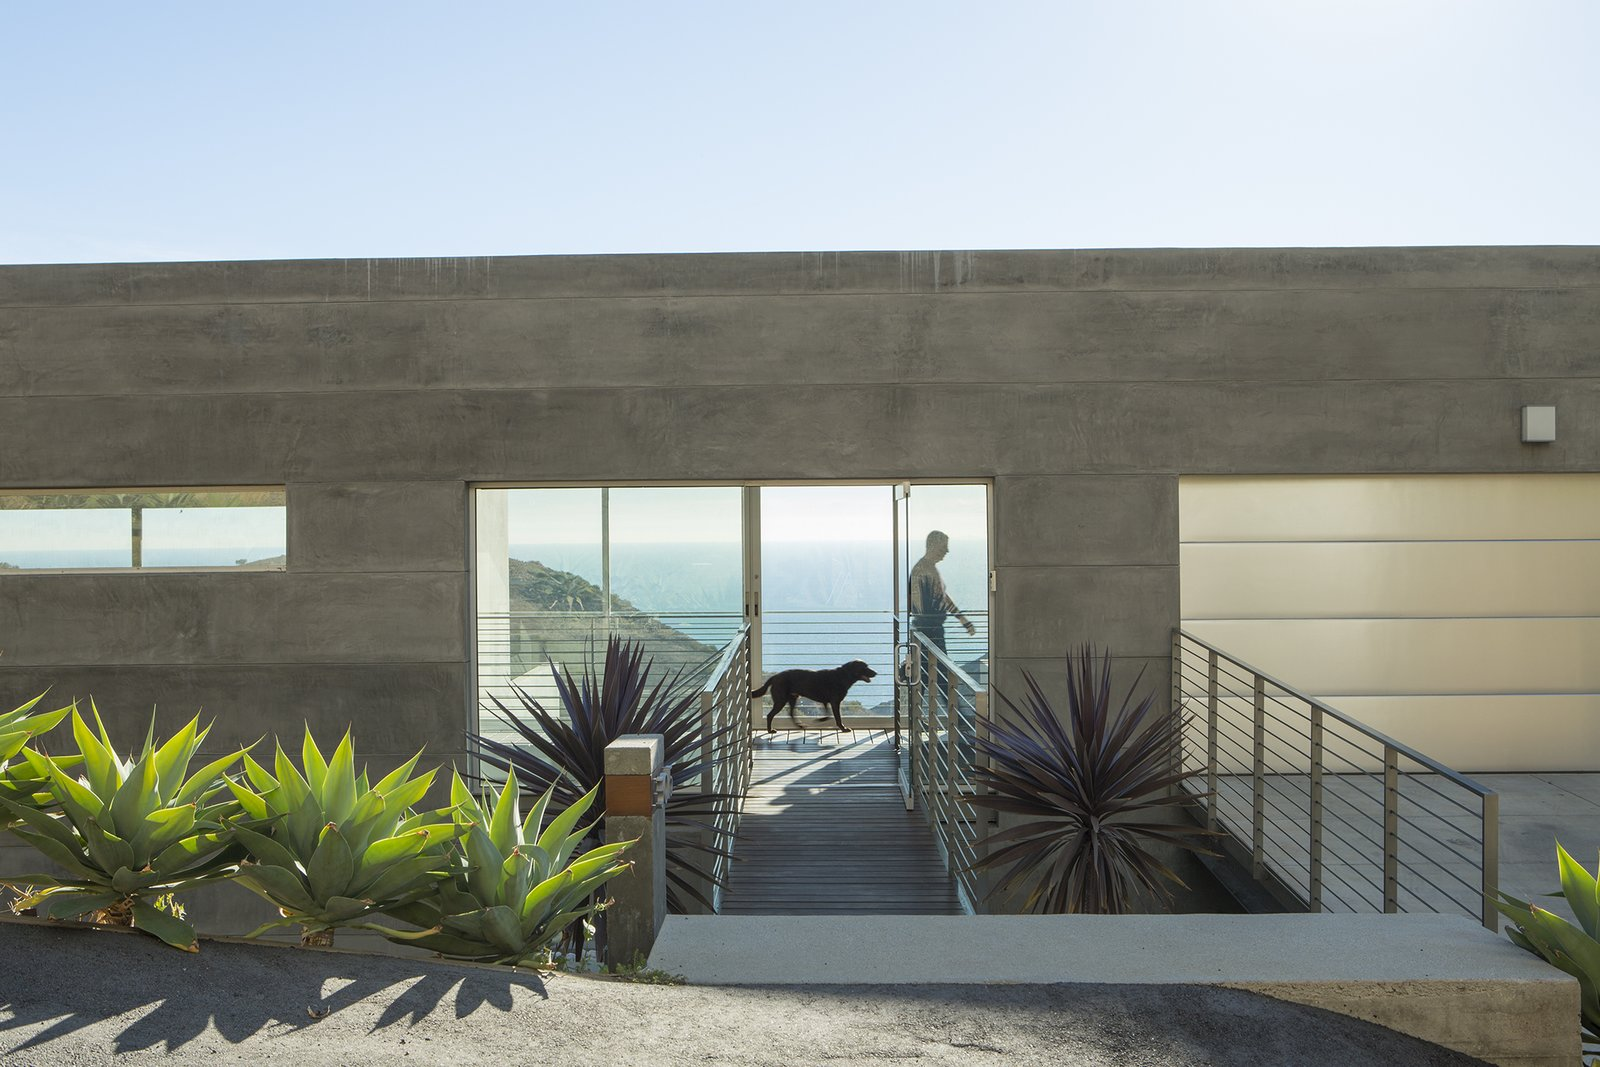 """""""Simple rectangular  volumes with simple details"""" is how designer Thomas Egidi describes the house he created for architect Carlos Dell'Acqua in Malibu. """"I wanted to stress its horizontality,"""" Dell'Acqua notes. Inside the dwelling, which is entered via a bridge that pierces the 25-foot-high main facade, the view  opens up to a panorama of mountains and sea. Ipe flooring is used for the walkway and throughout the interior."""